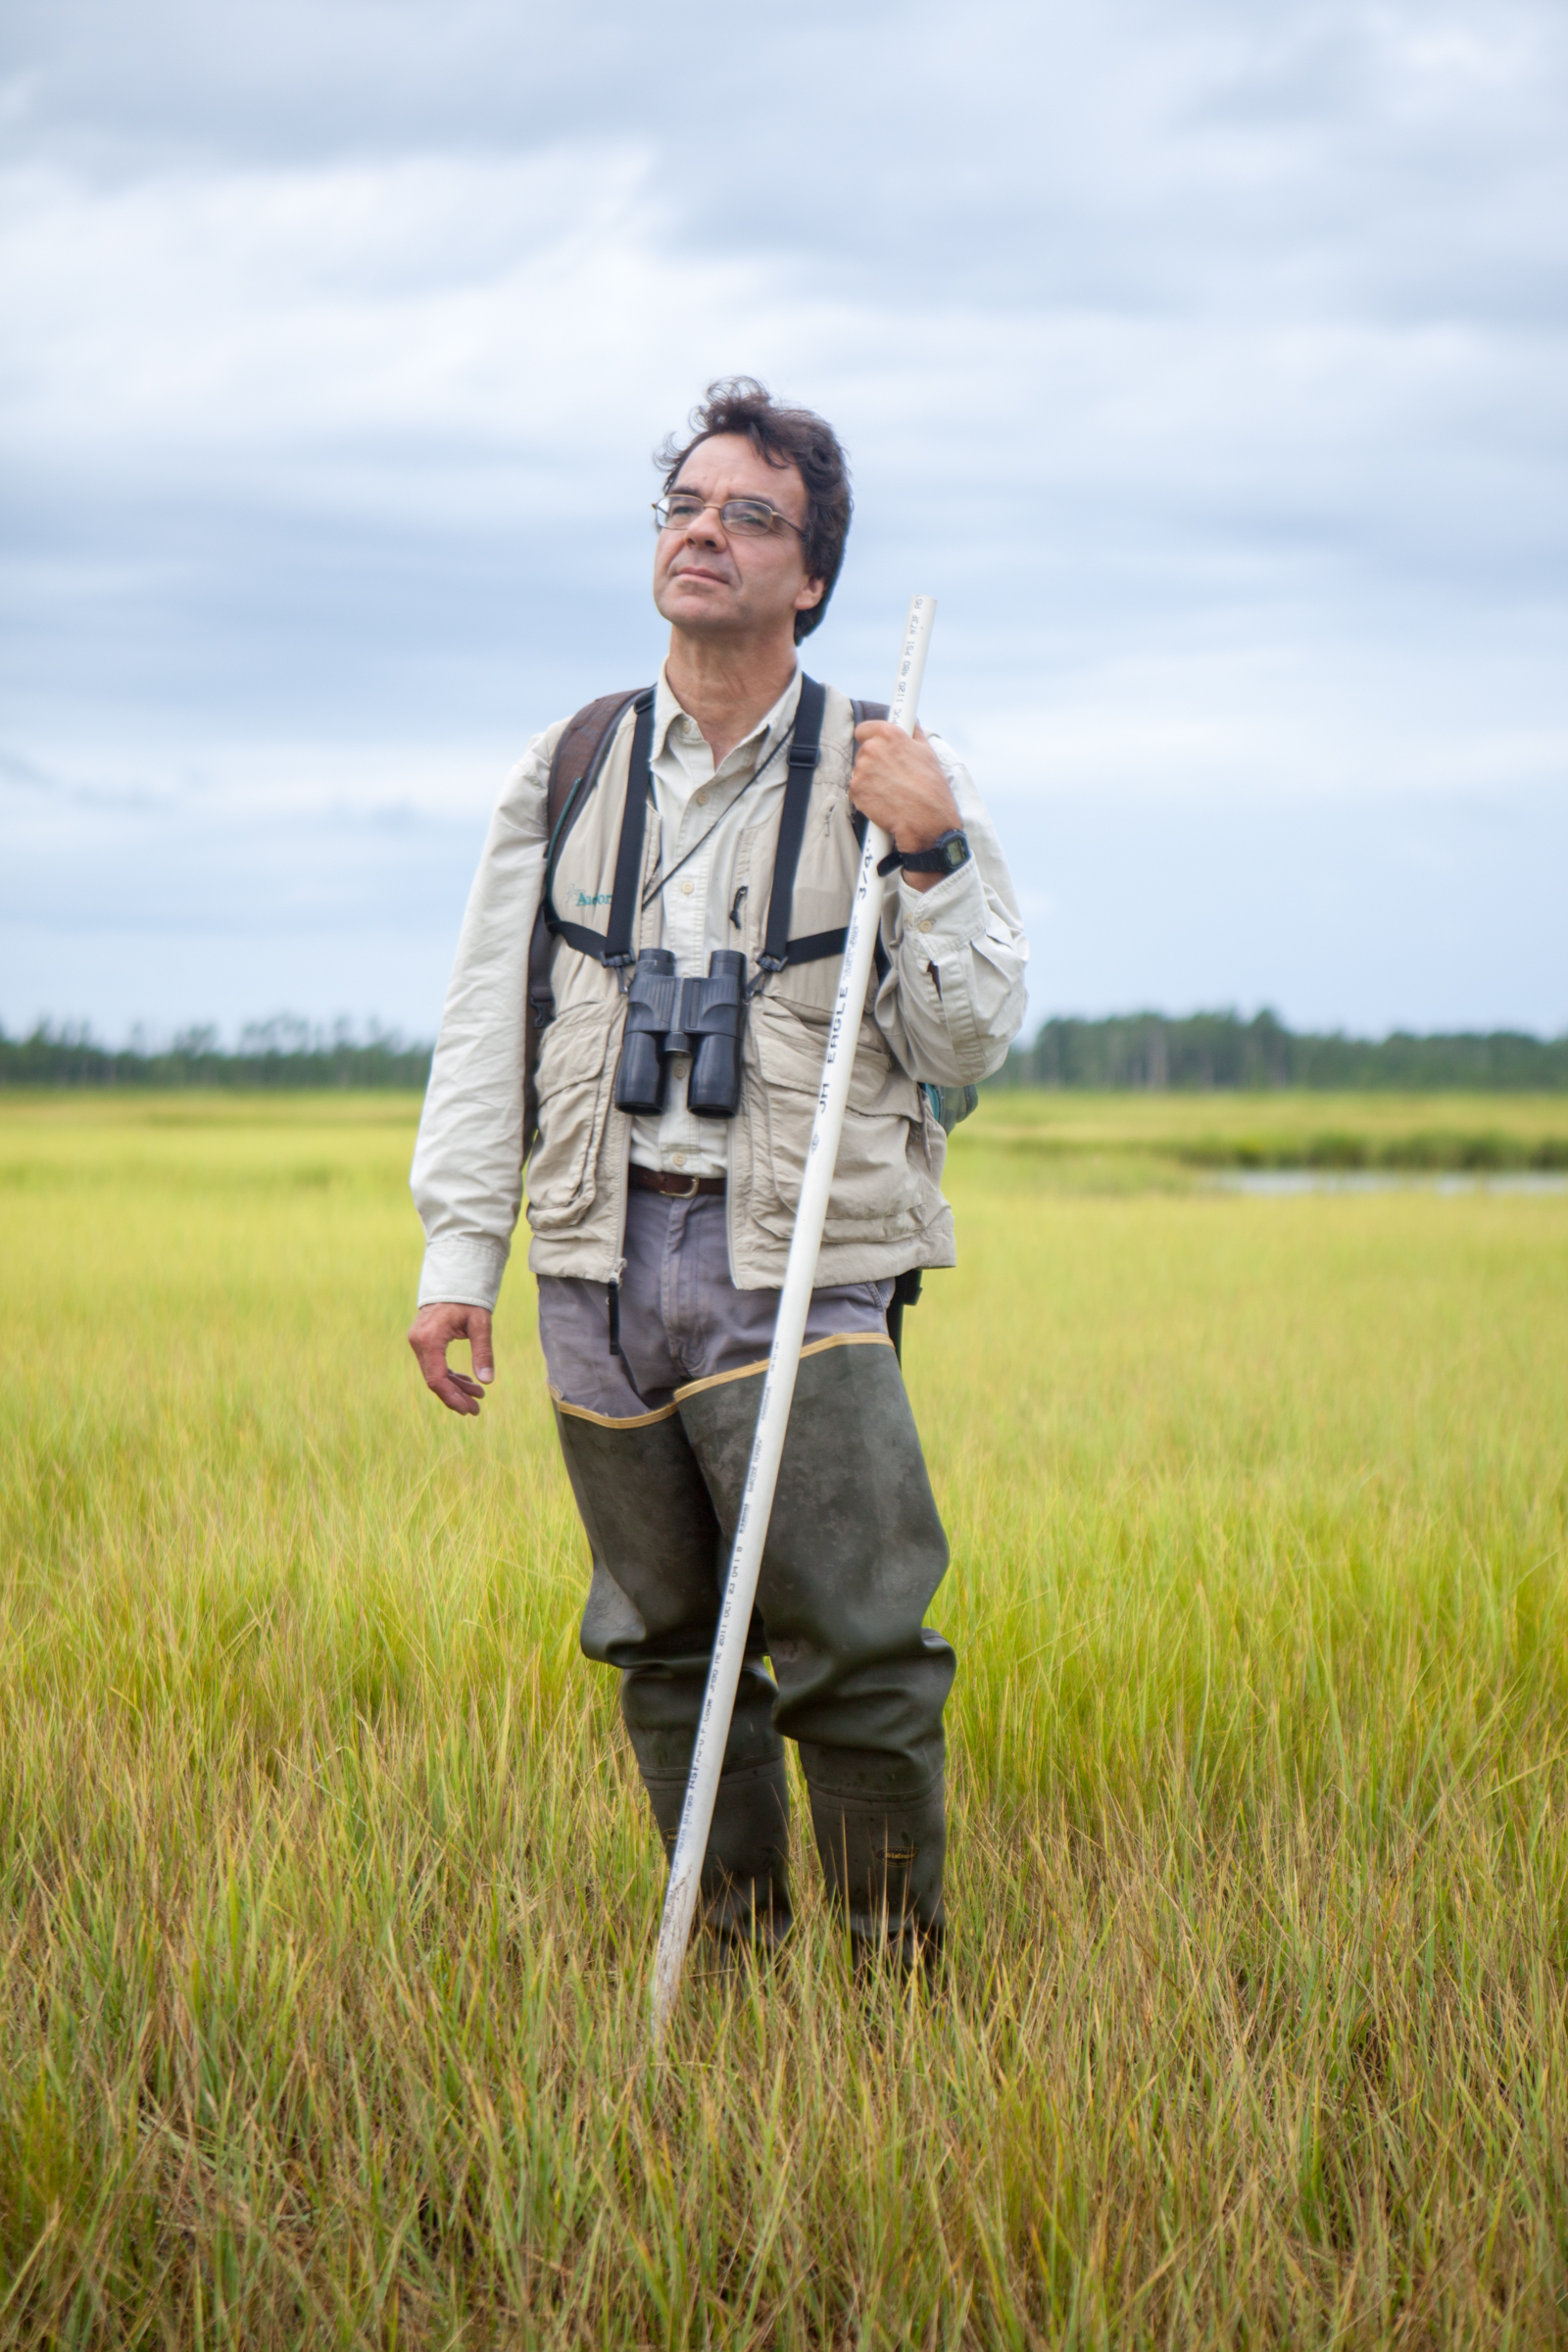 Dave Curson, Audubon Maryland-DC's director of bird conservation, stands at Blackwater National Wildlife Refuge. He carries a stick so he can extract himself when he falls into deep muddy holes. Camilla Cerea/Audubon